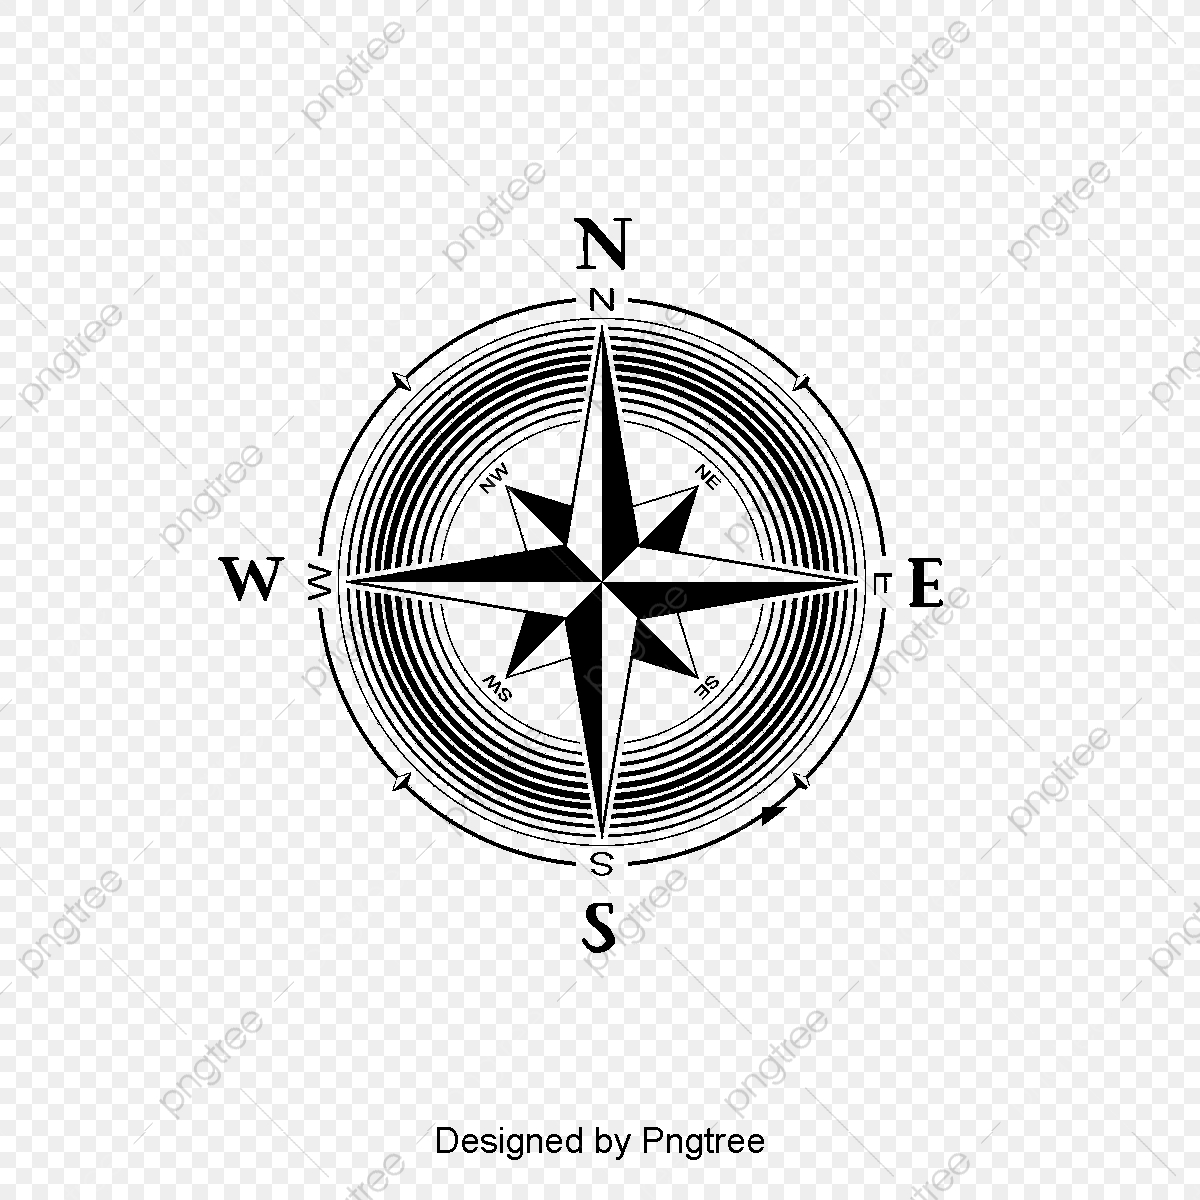 Hand painted wild adventure. Free clipart for a compass with cross